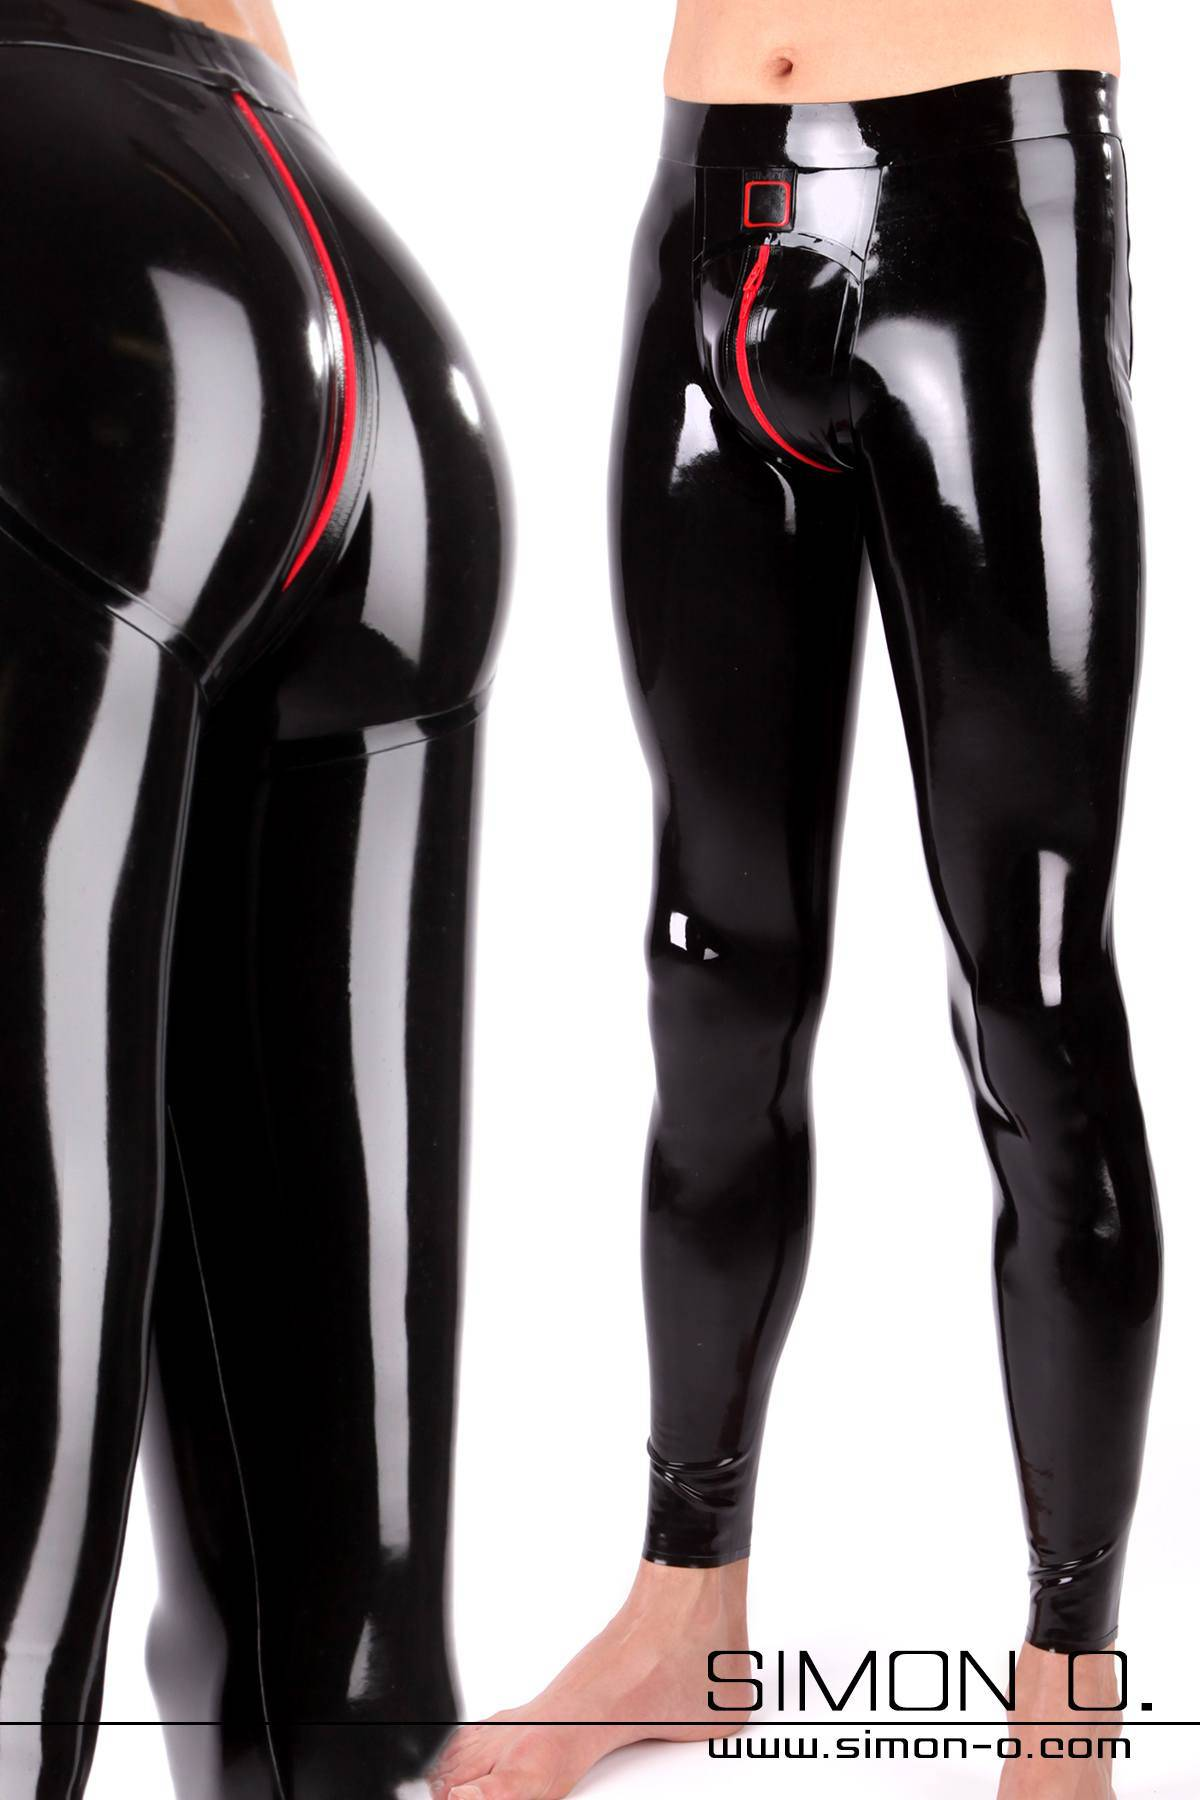 Tight latex leggings for men with push up effect in the seat area. Shiny black with full-length zipper at crotch